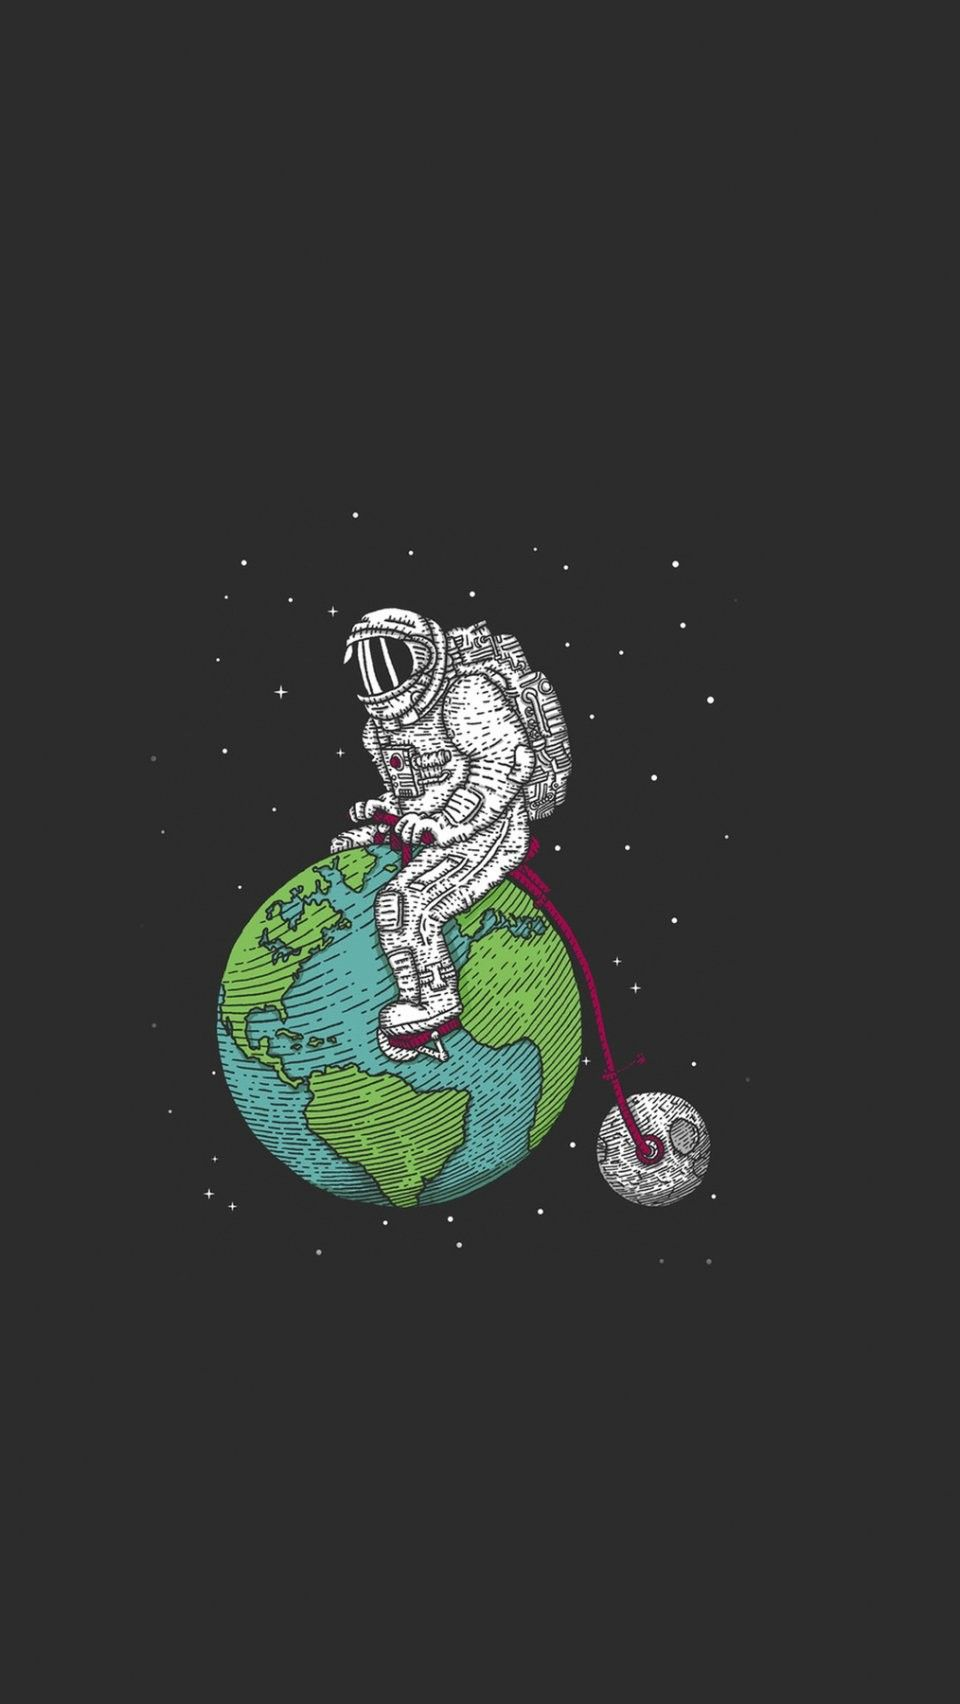 astronaut on moon earth background - photo #30